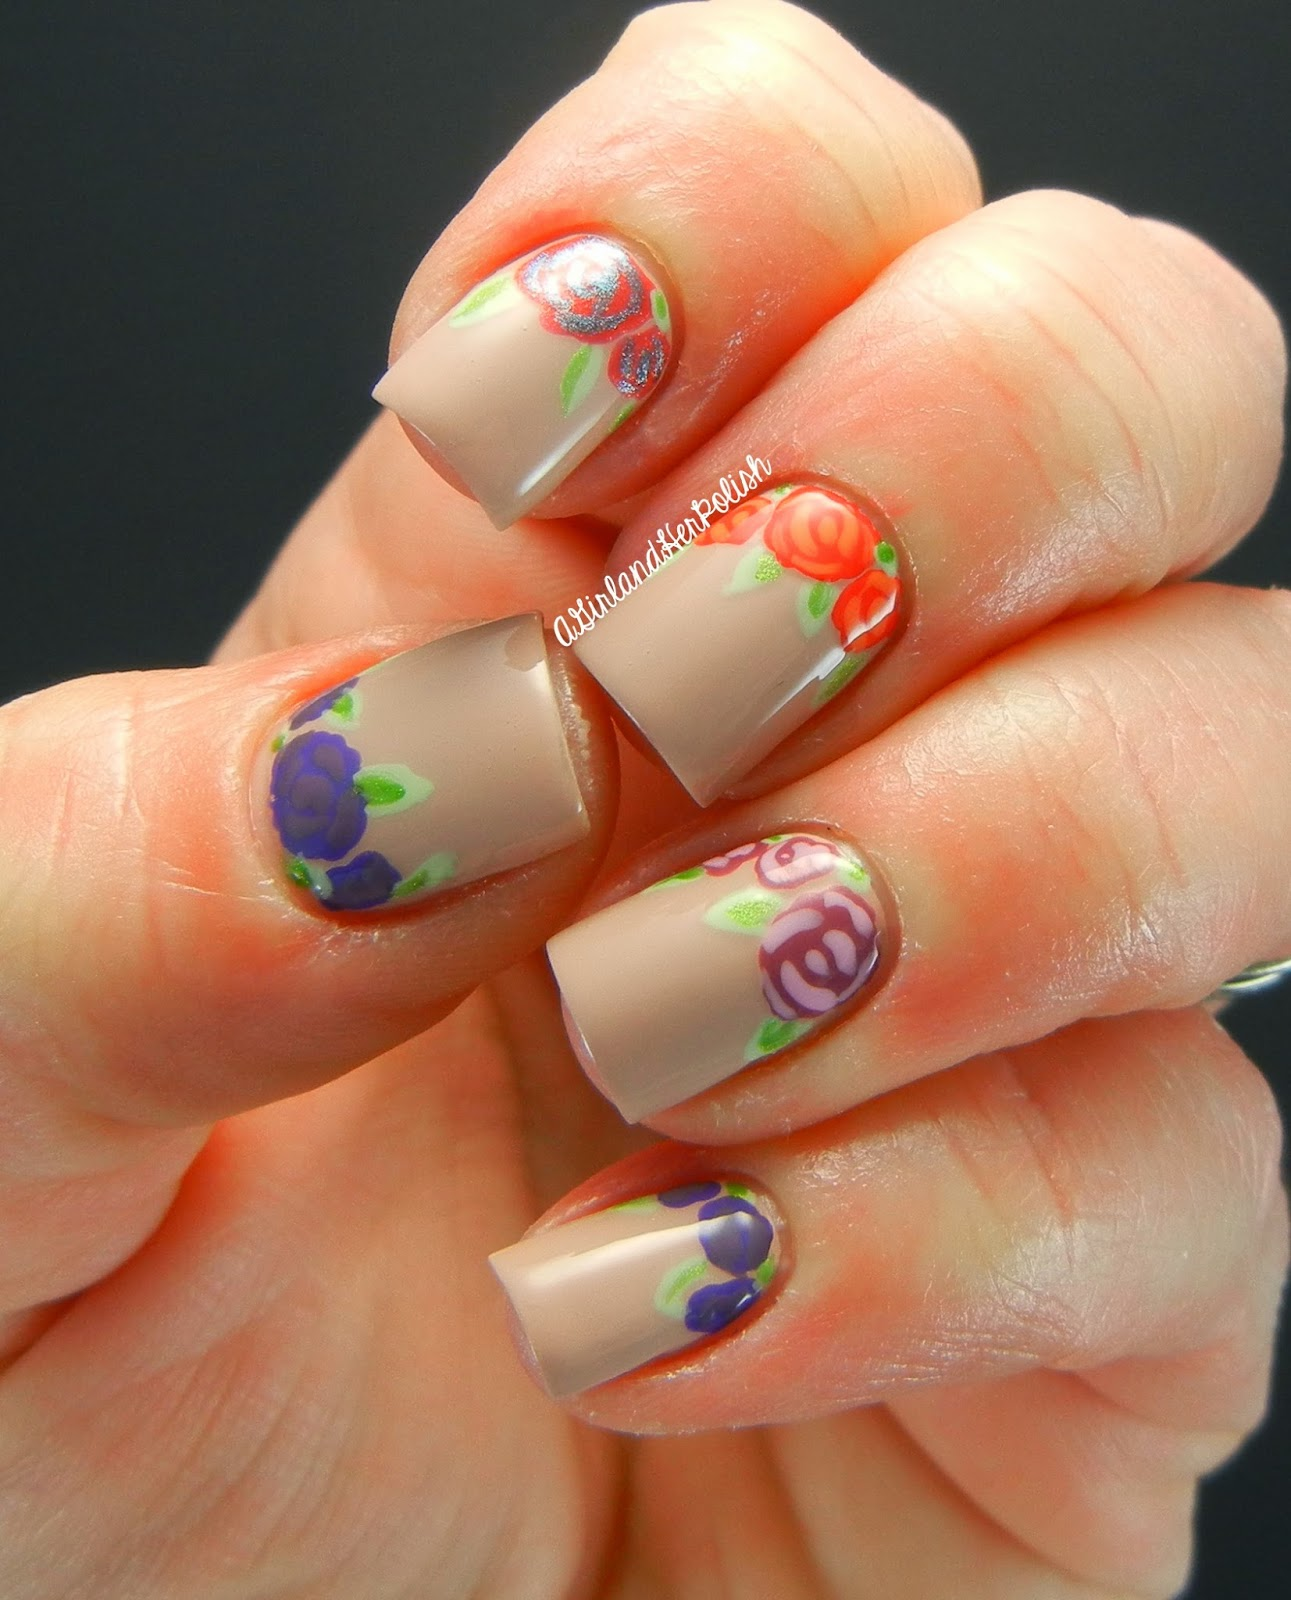 Alfa img - Showing > Hawaii Theme Toe Nail Art